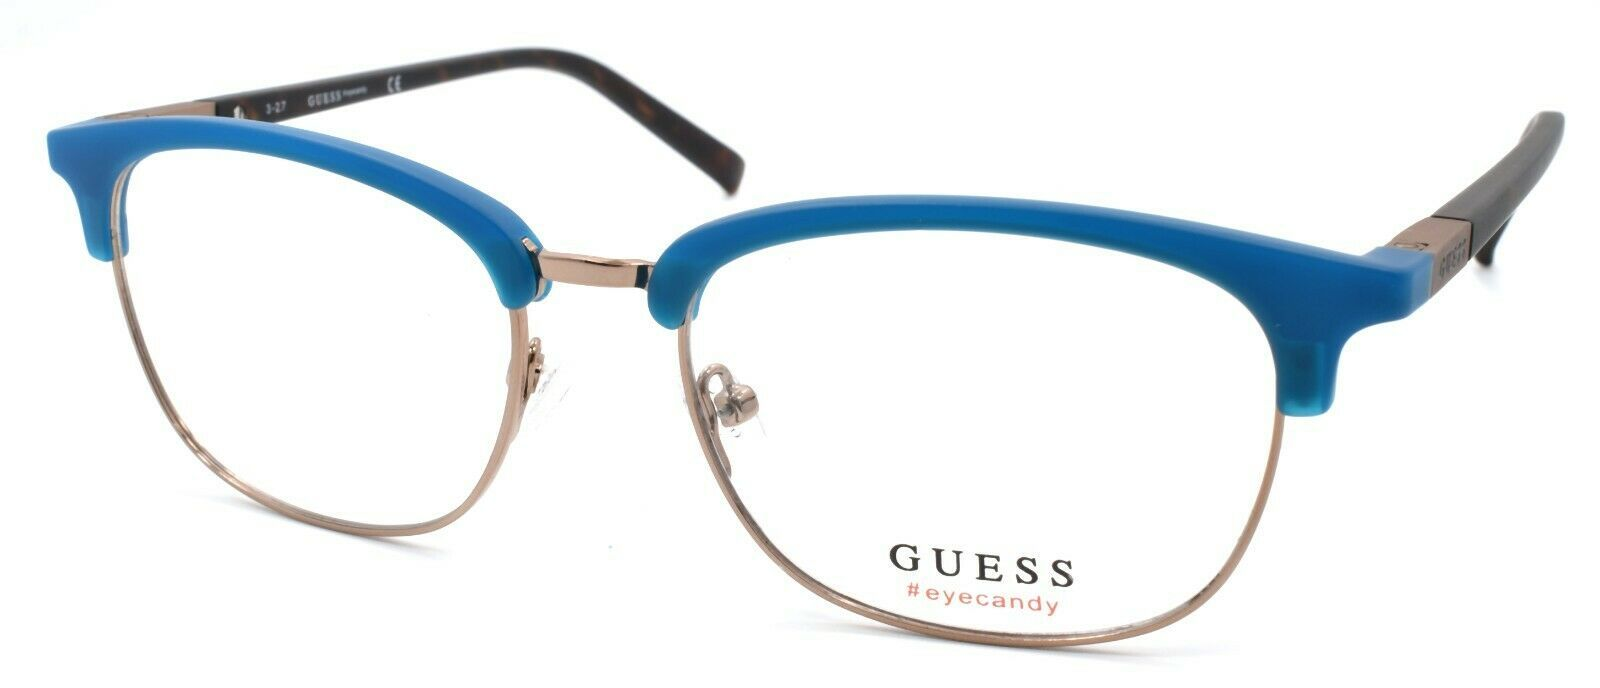 Primary image for GUESS GU3024 088 Eye Candy Women's Eyeglasses Frames 51-17-135 Matte Turquoise